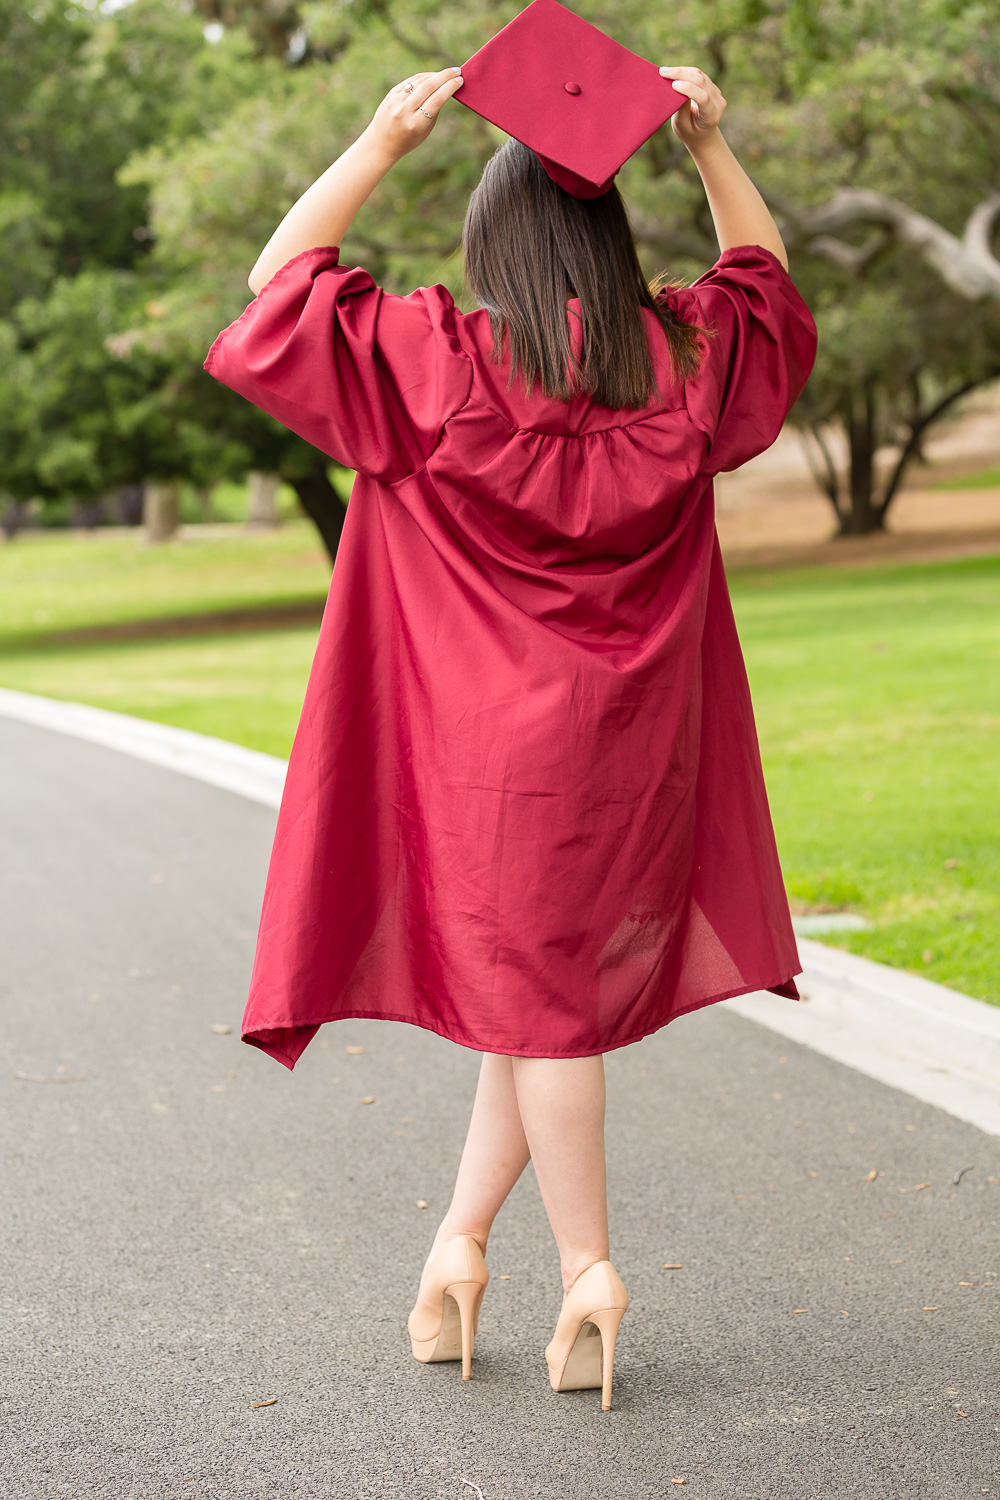 Senior graduate in cap and gown.jpg